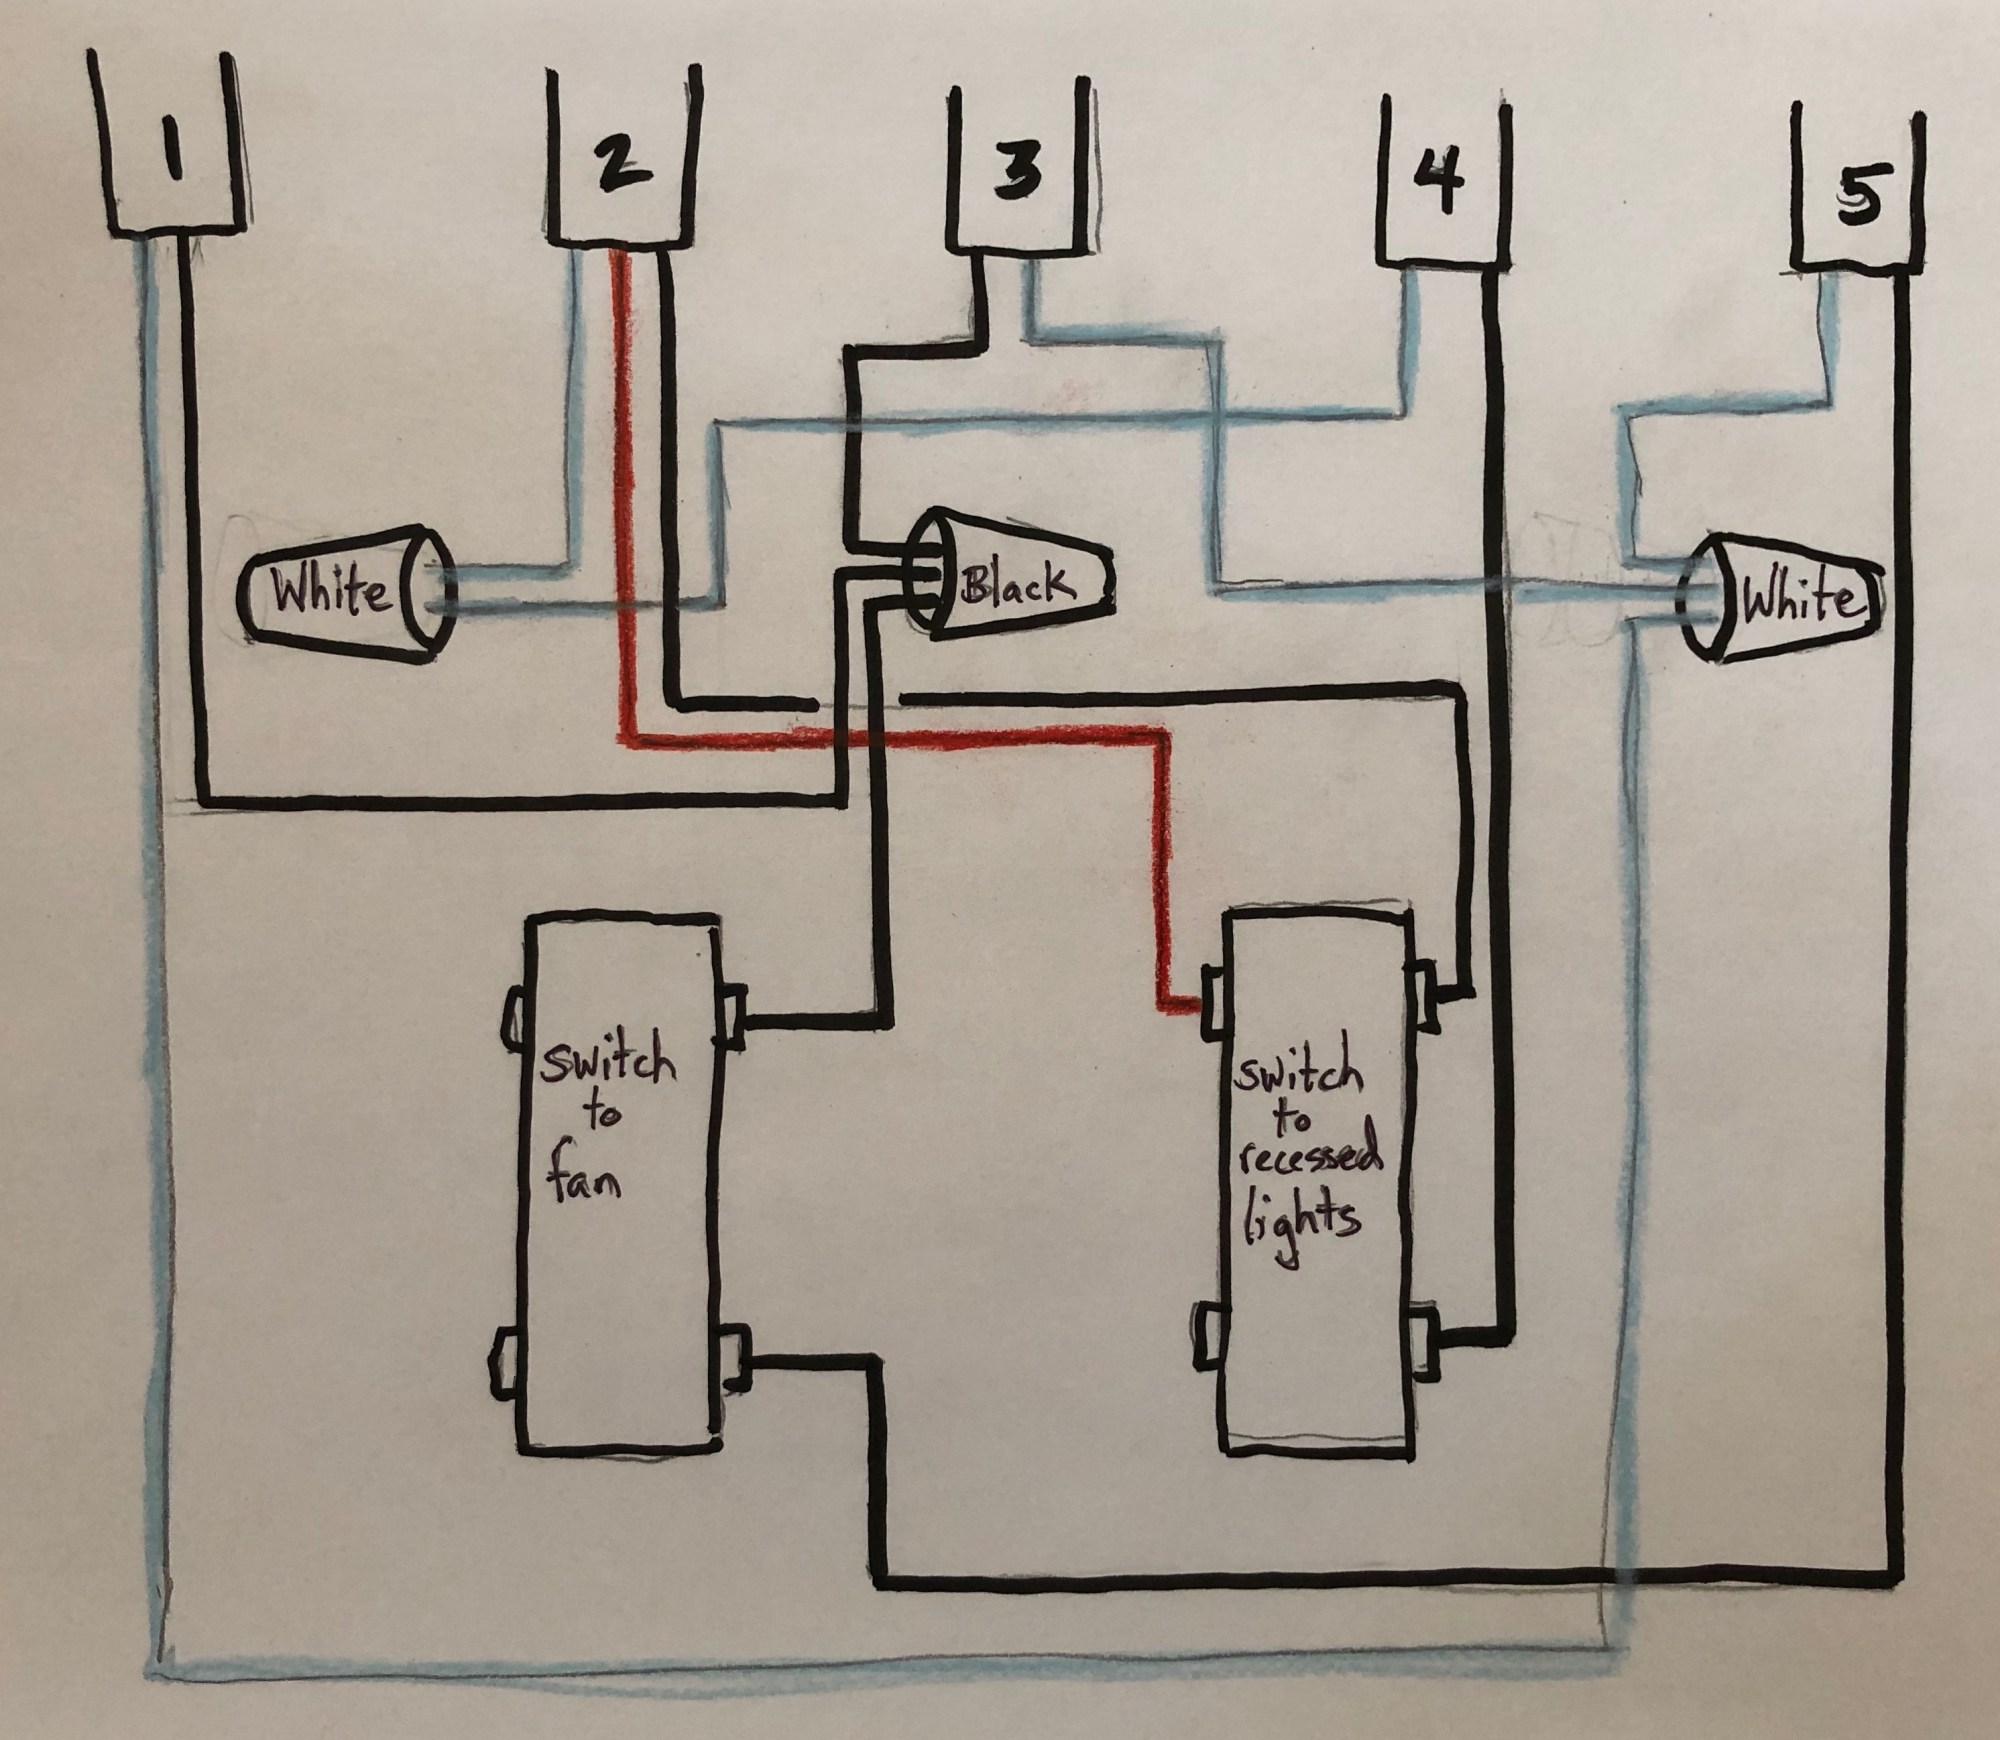 hight resolution of replacing bath fan switch with timer switch